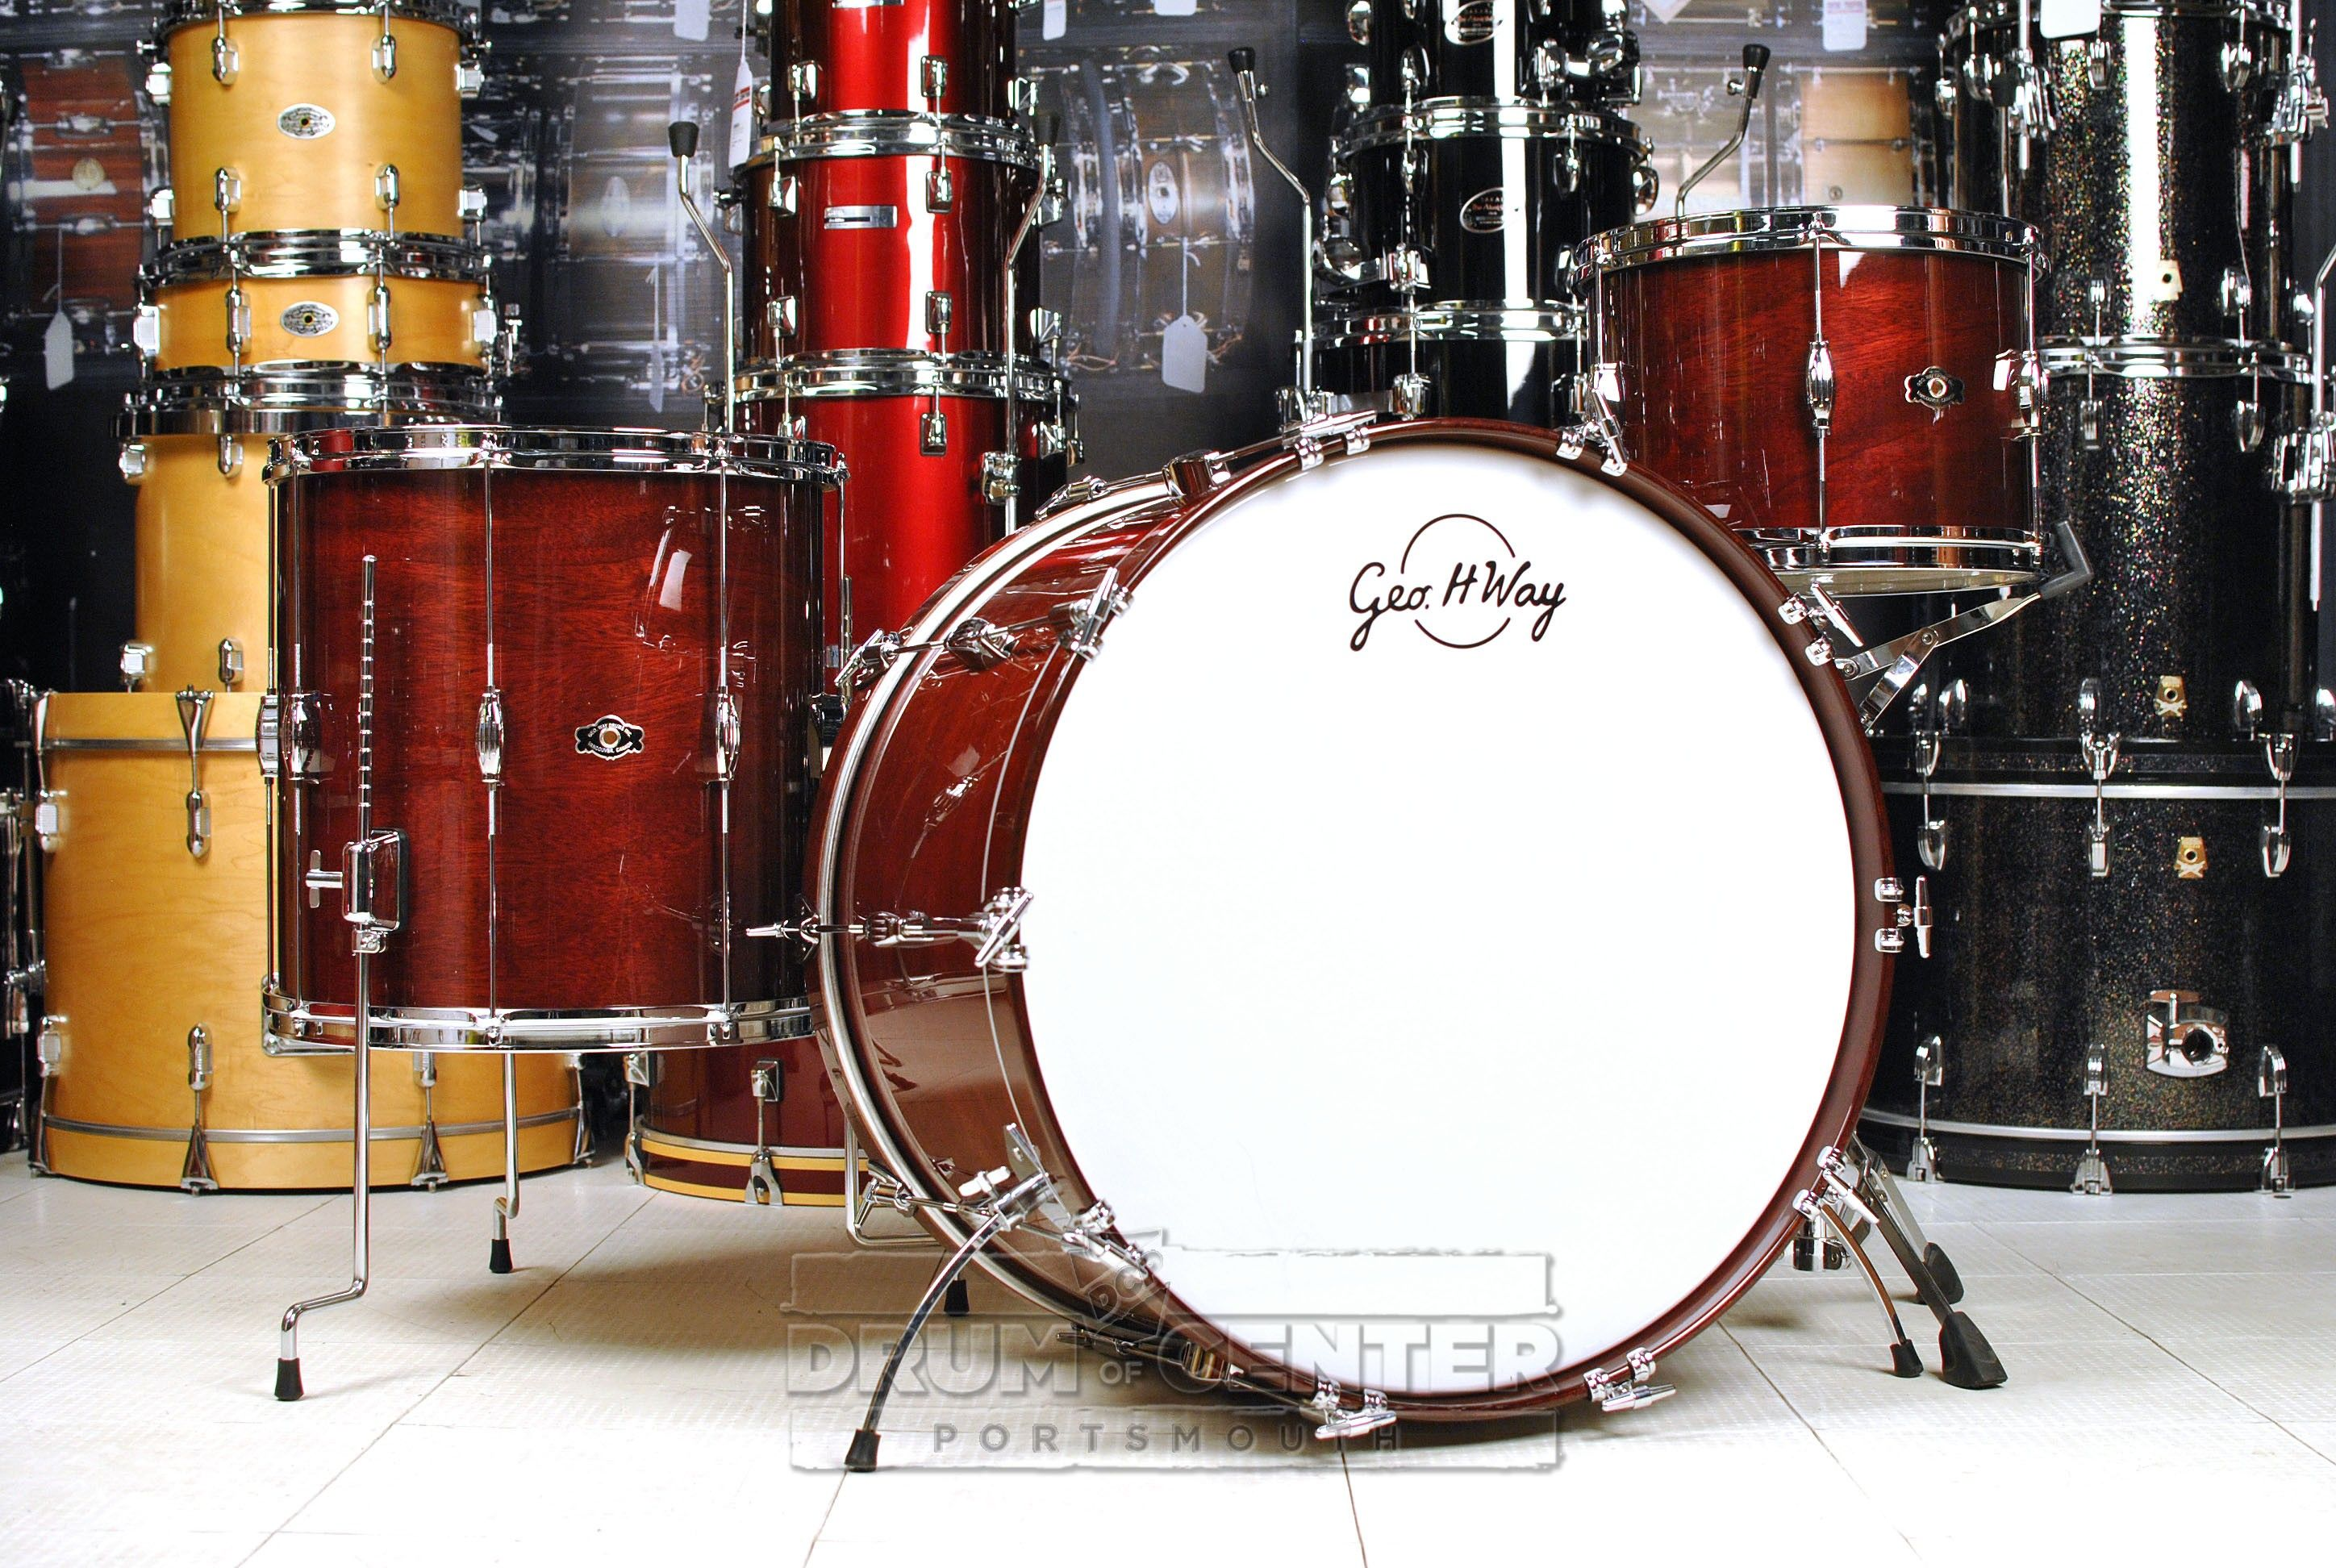 George Way Tradition Mahogany Drum Set 24 13 16 Wine Red Gloss Drums Drum Set Wine Red